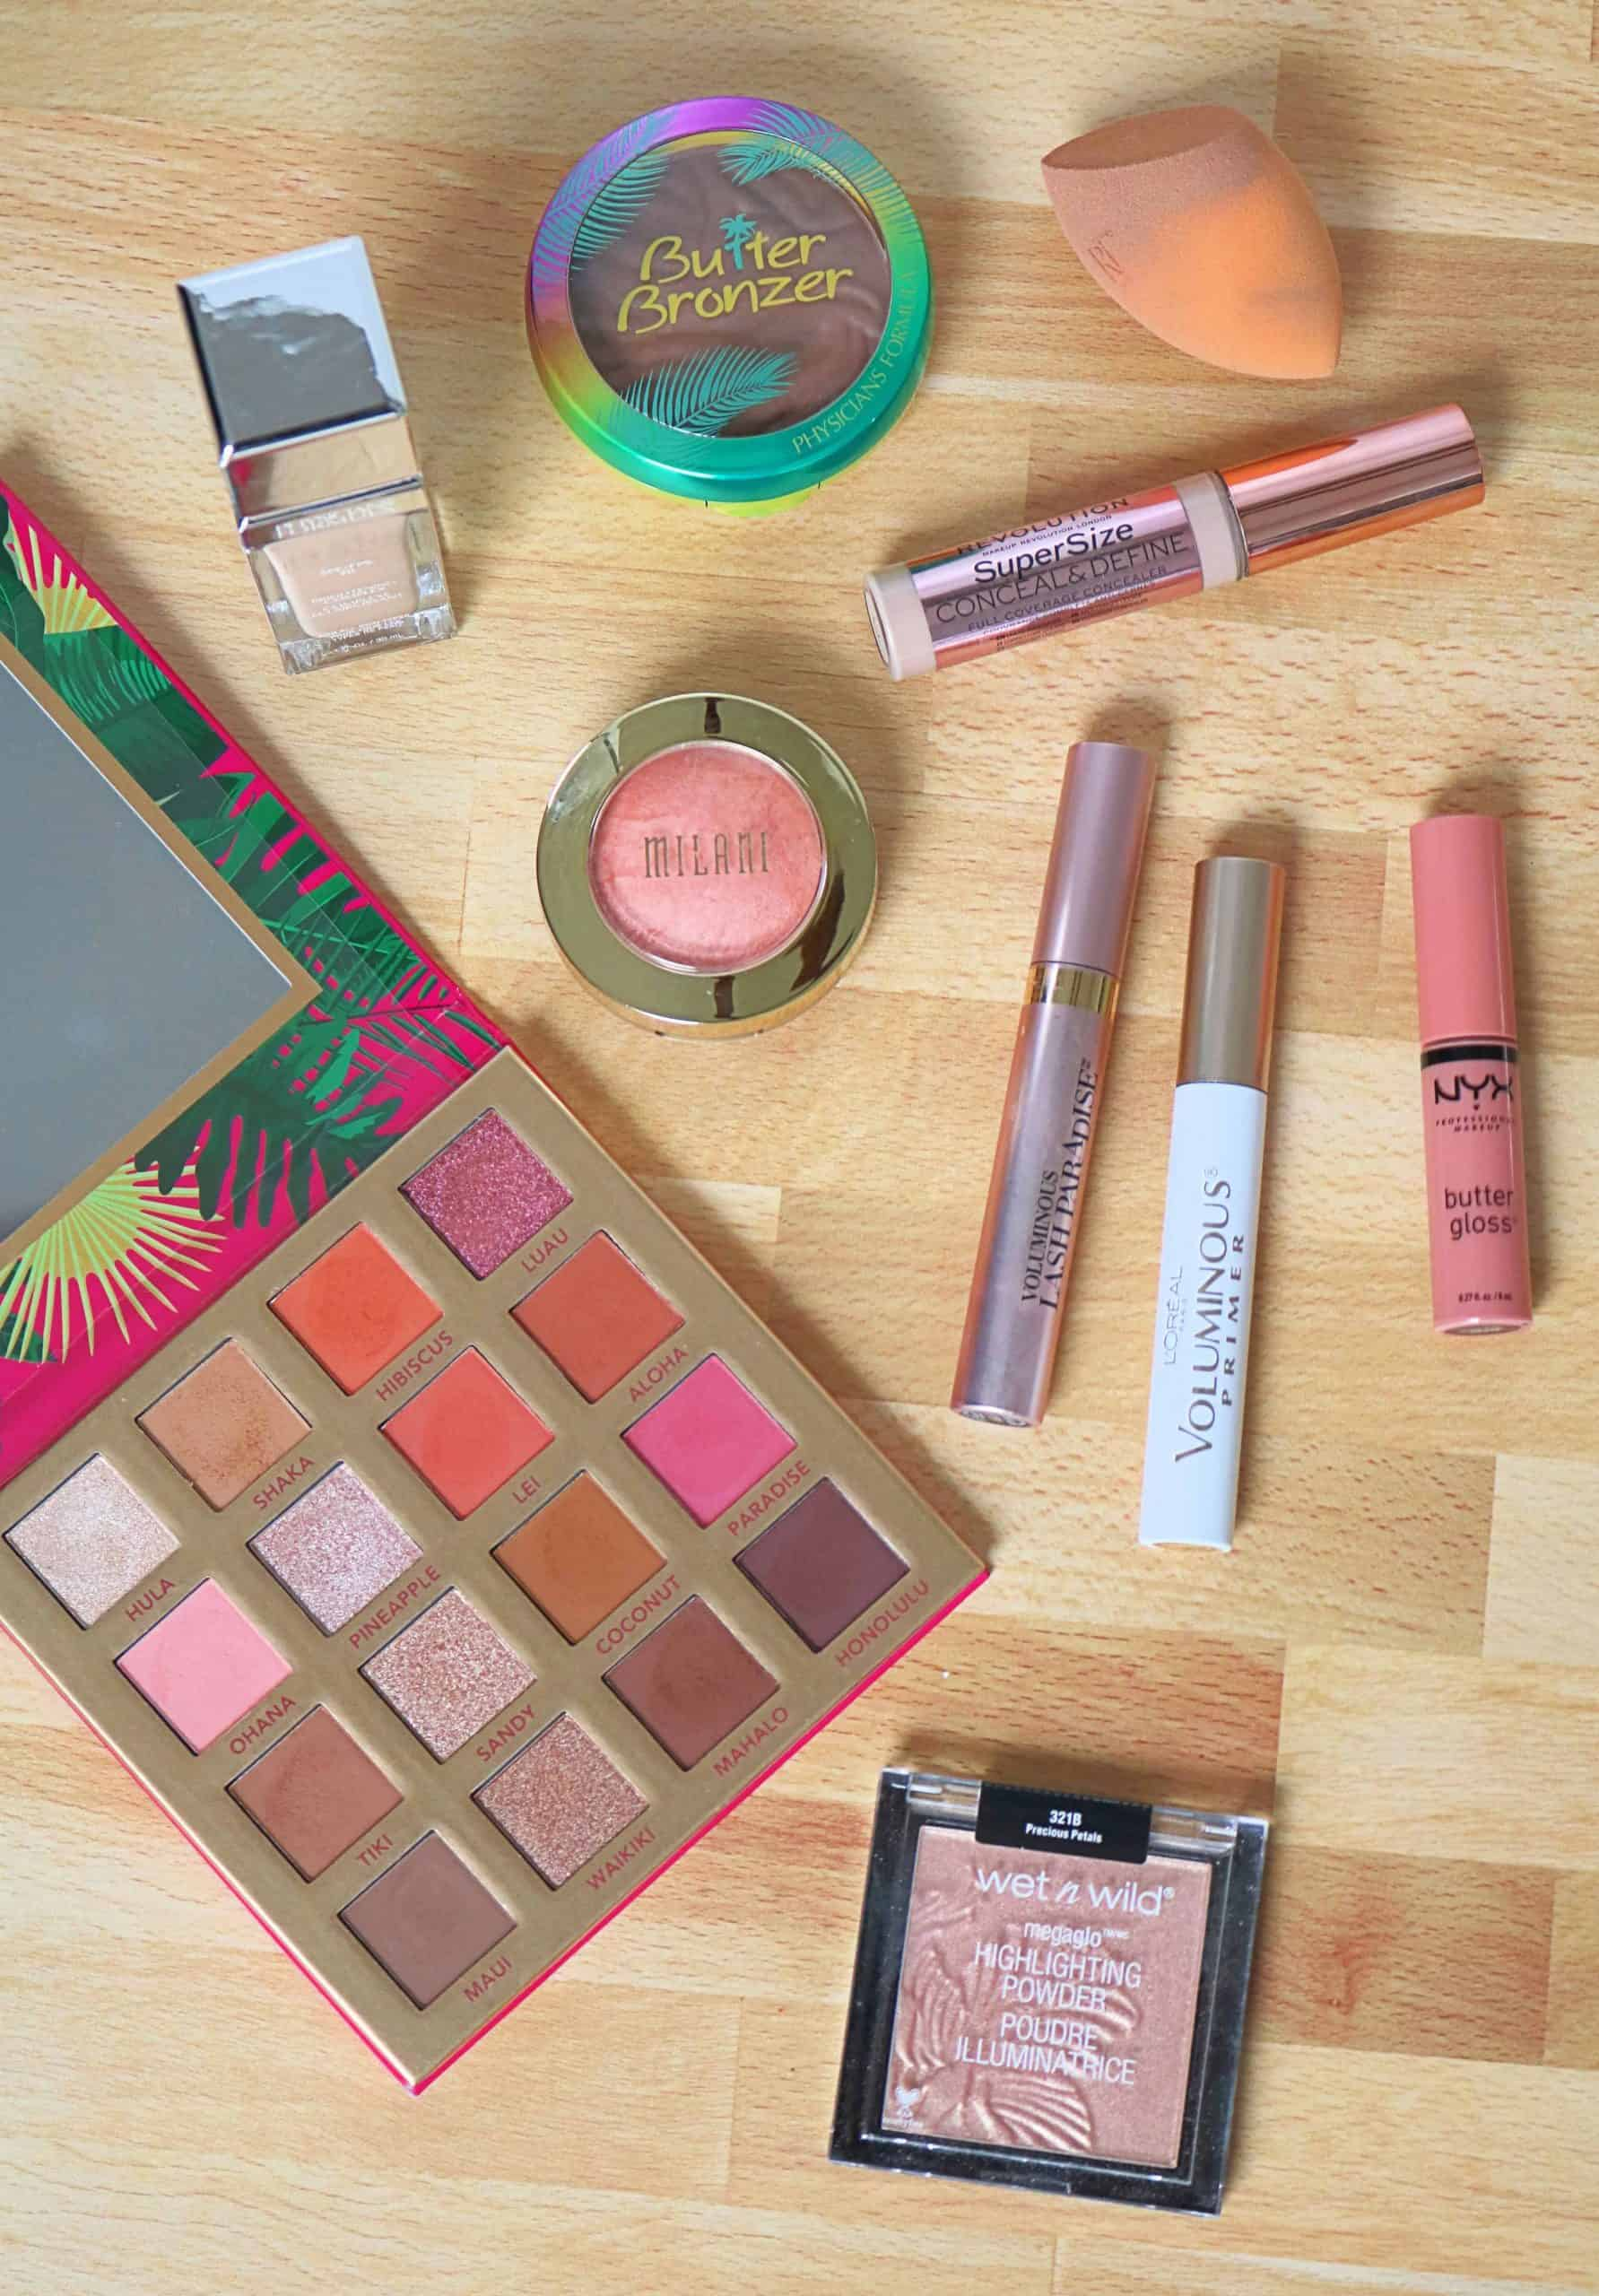 Looking for the best drugstore makeup products of all time? Check out my list of 25 drugstore makeup must-haves with the best quality drugstore makeup you can find on a budget. #drugstoremakeup #makeup #affordablemakeup #makeupmusthaves